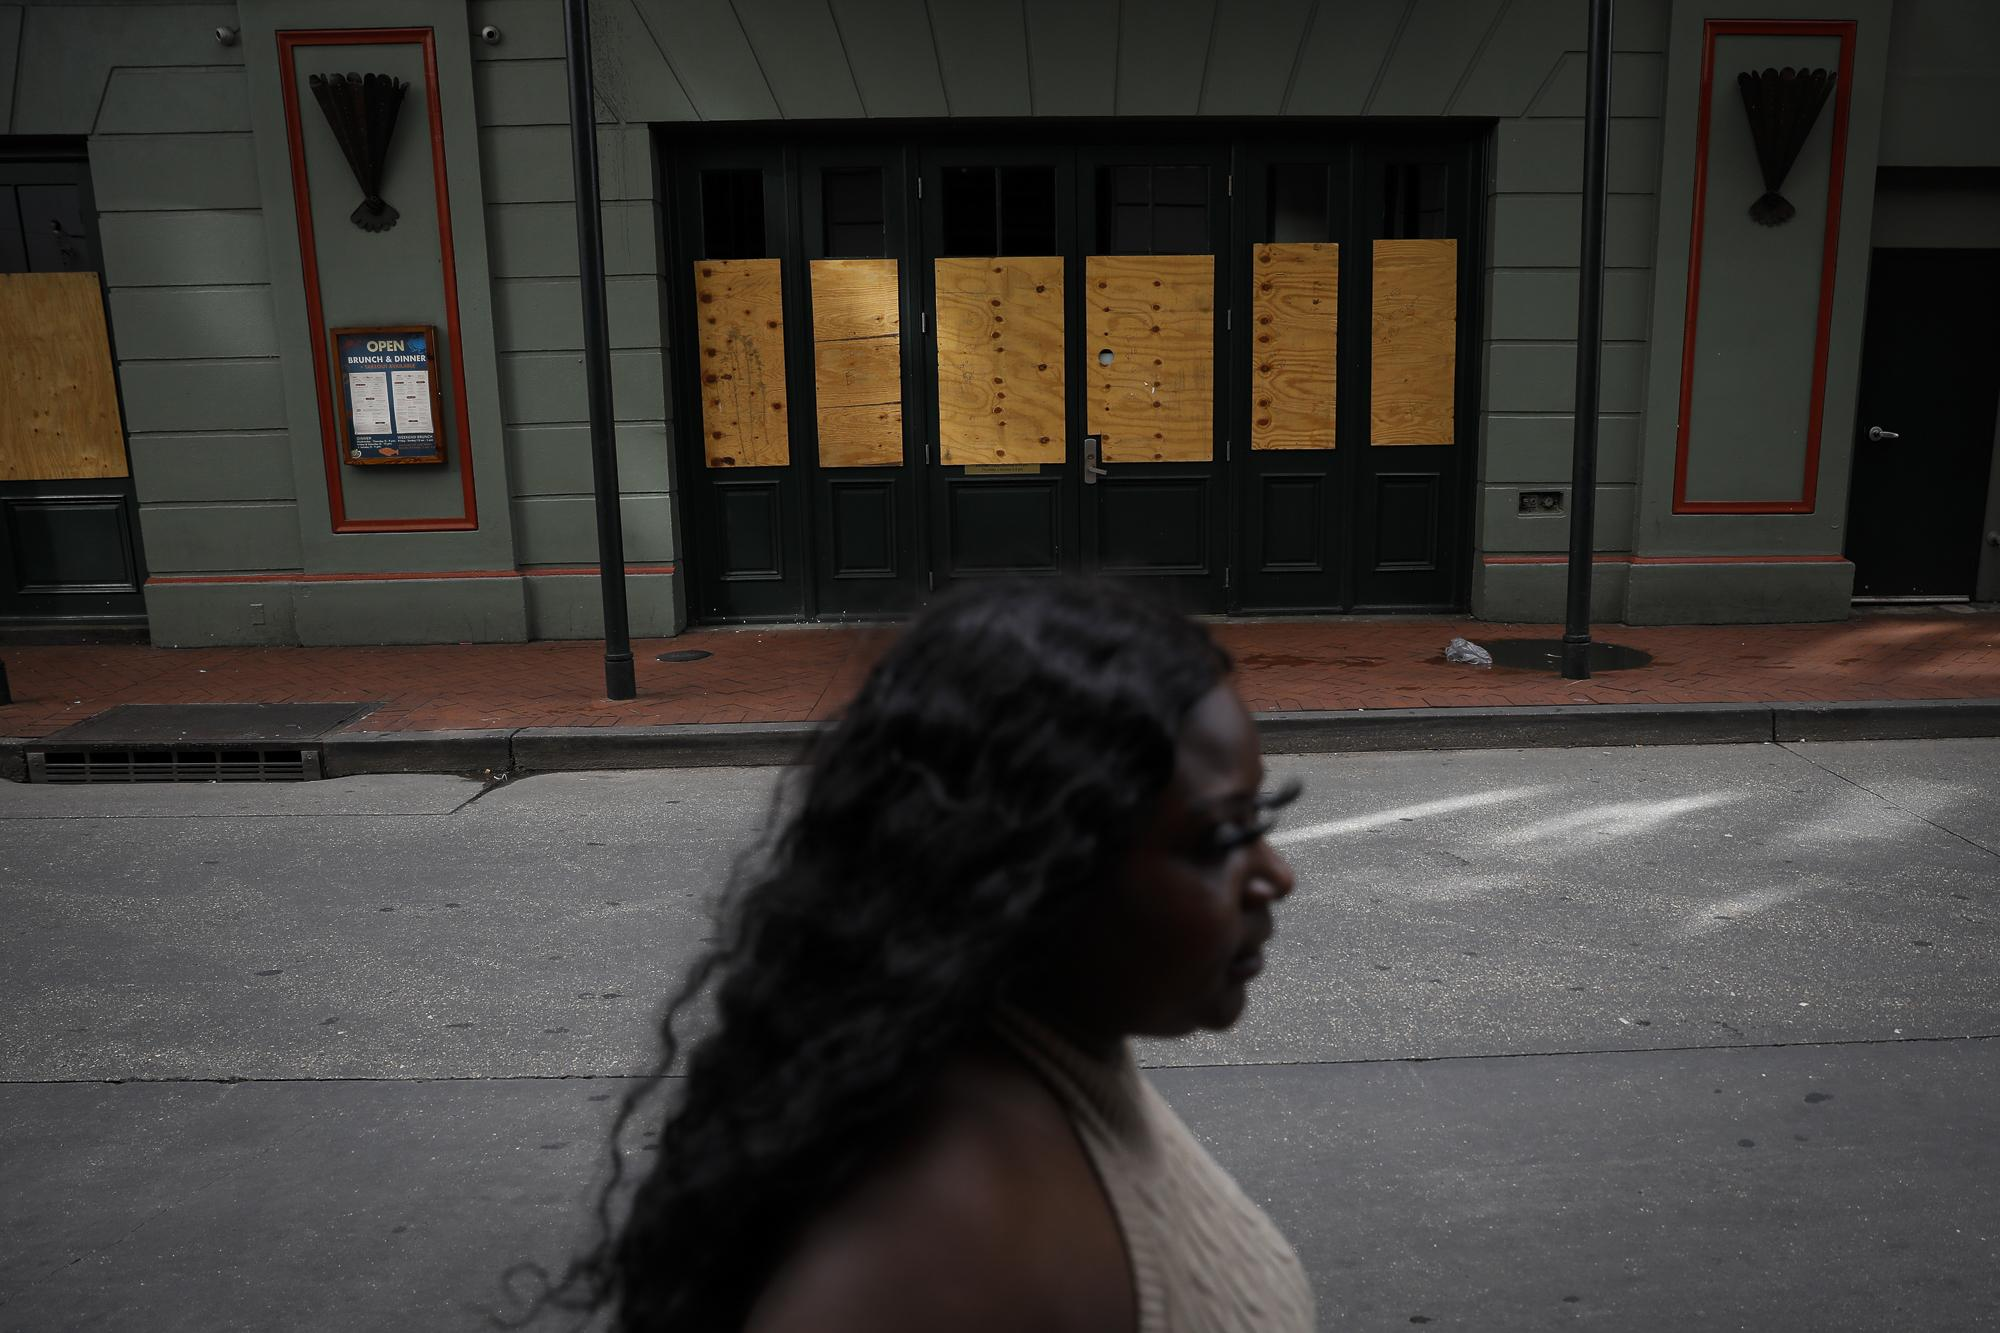 A woman walks past a restaurant boarded up with plywood in preparation for Hurricane Ida, in New Orleans, Lousiana, U.S. August 28, 2021. REUTERS/Marco Bello